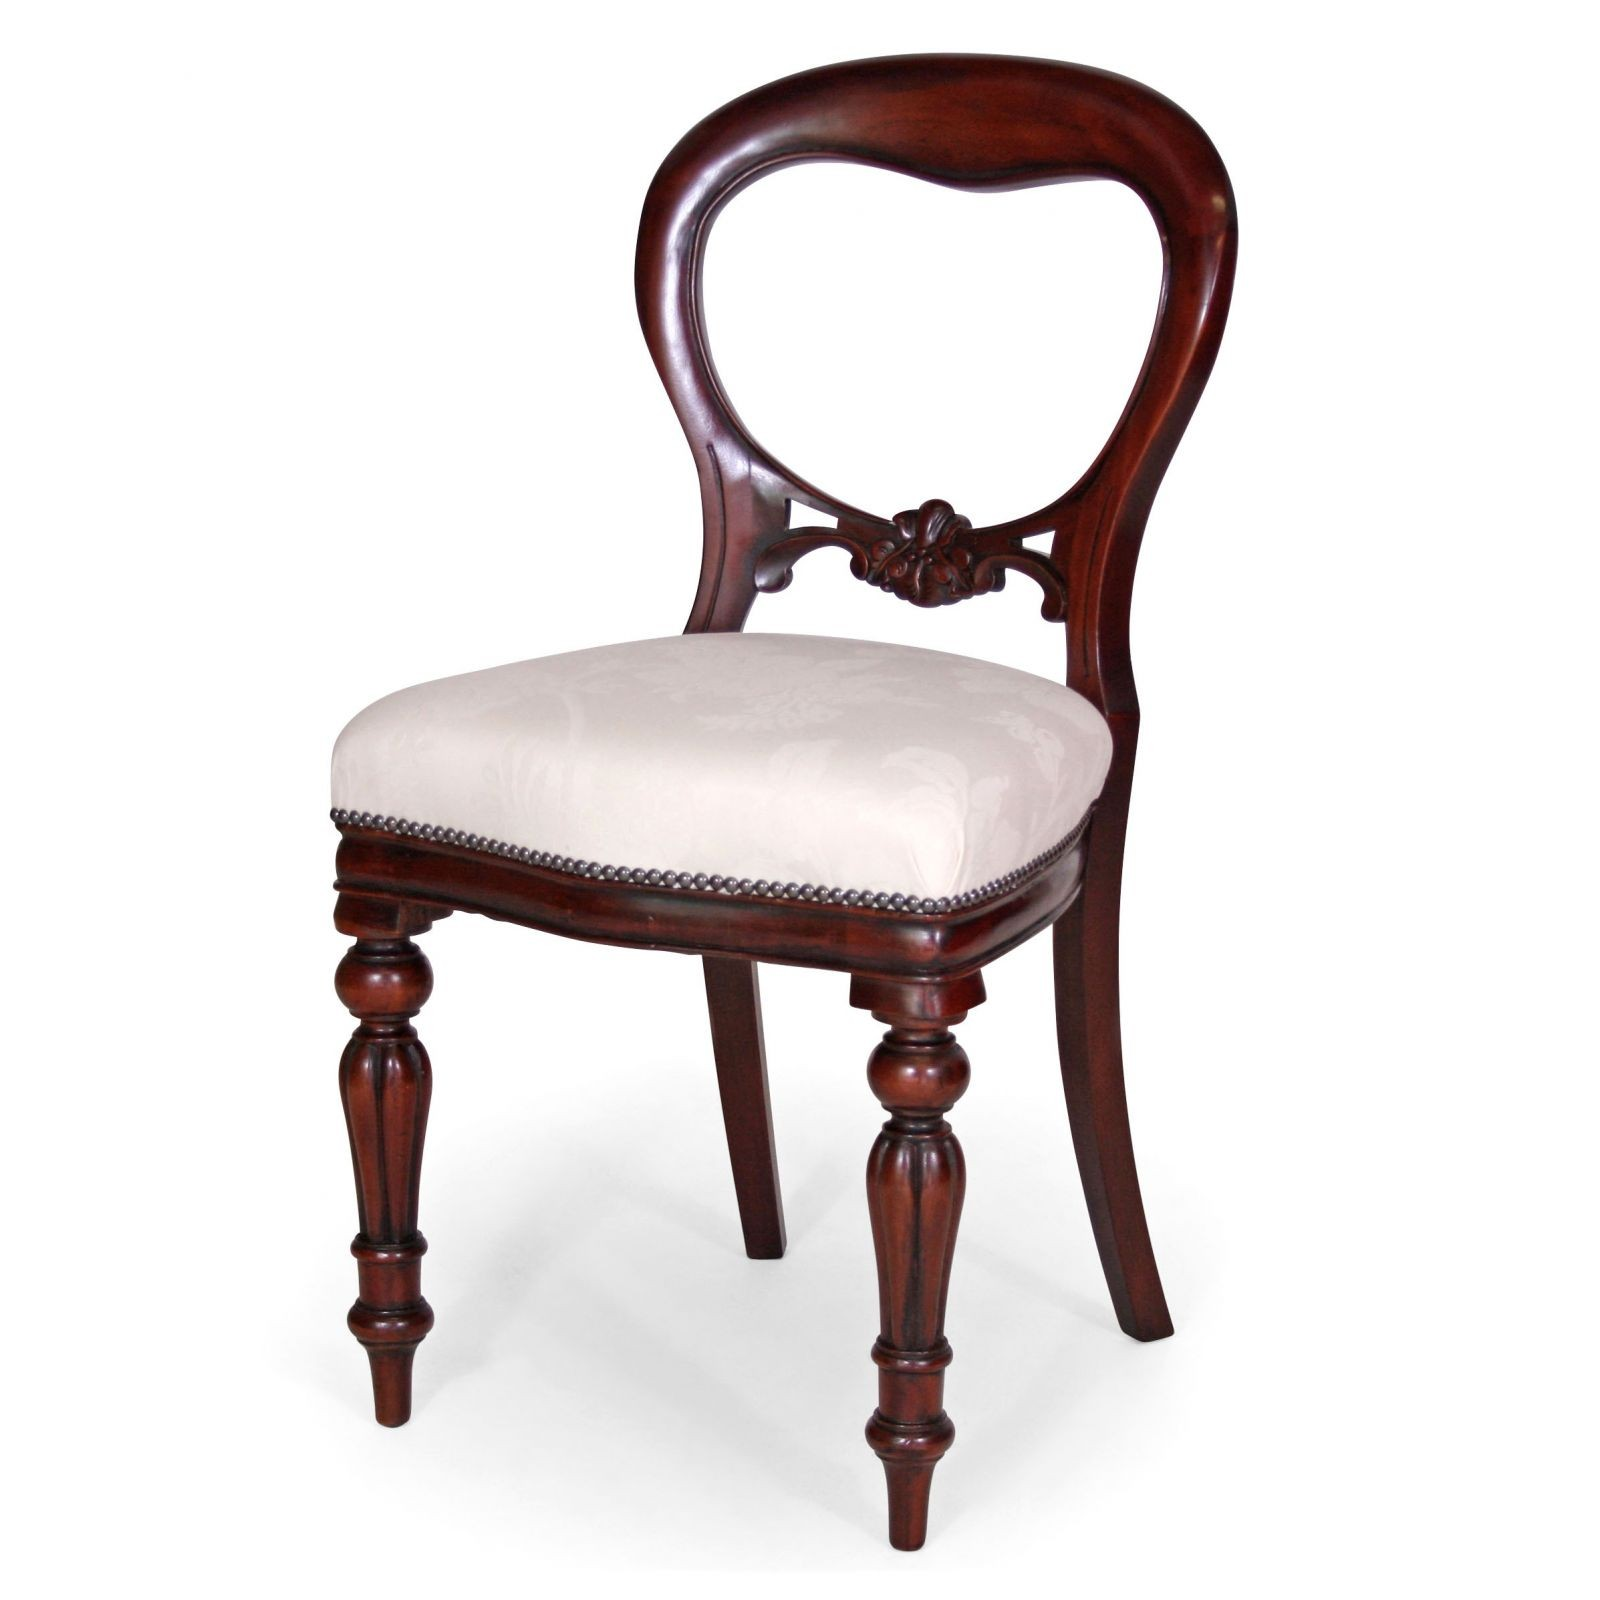 Mahogany Victorian style balloon back dining chair in champagne damask